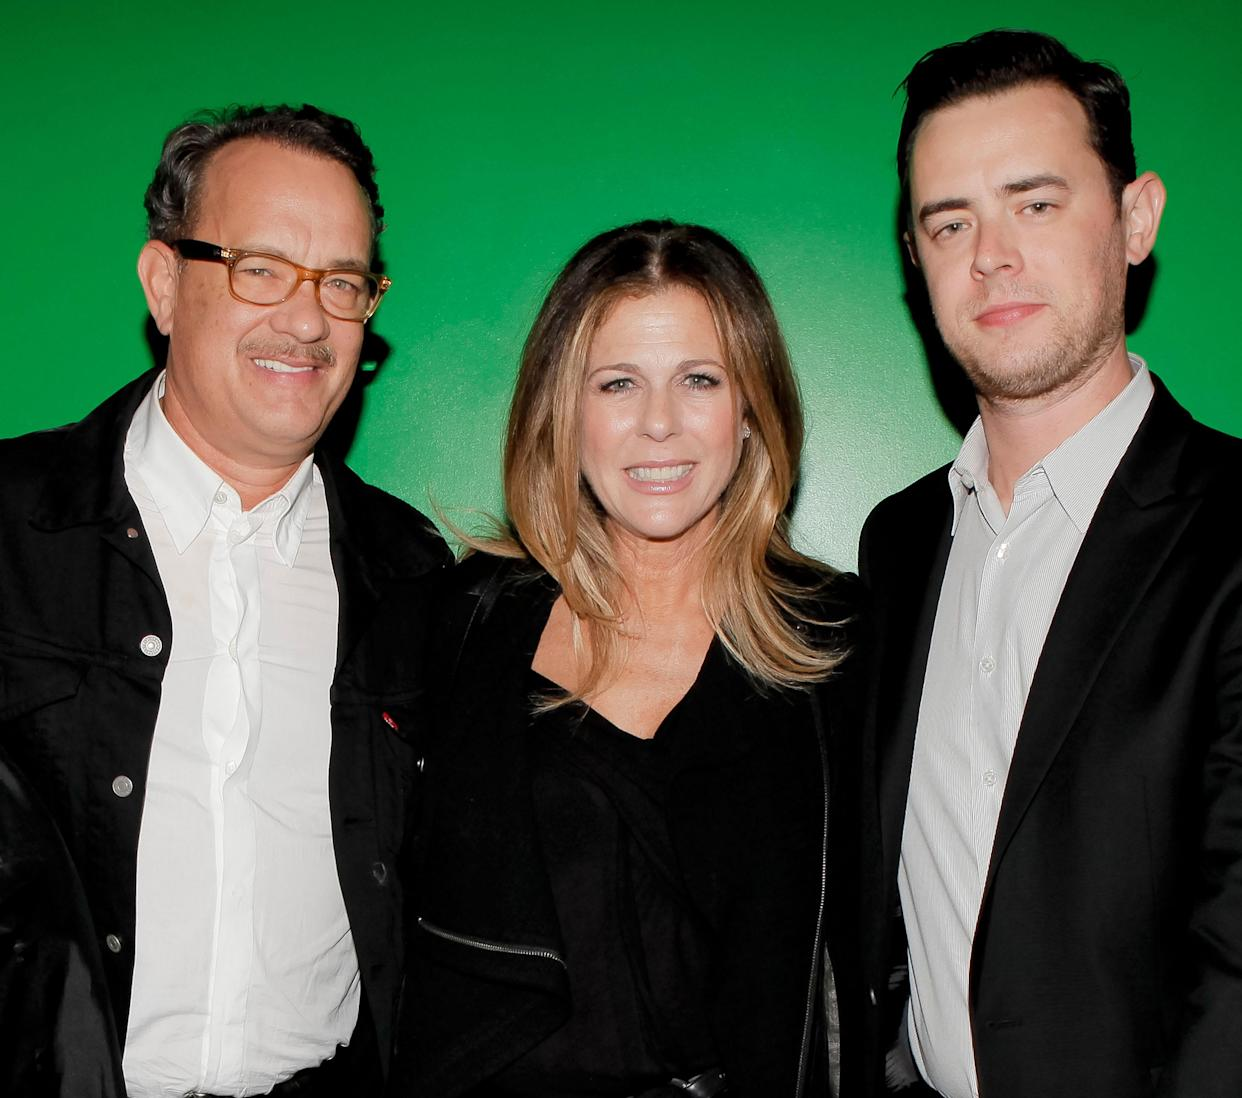 Colin Hanks says his daughters aren't interested in his and Tom Hanks's careers. (WireImage)